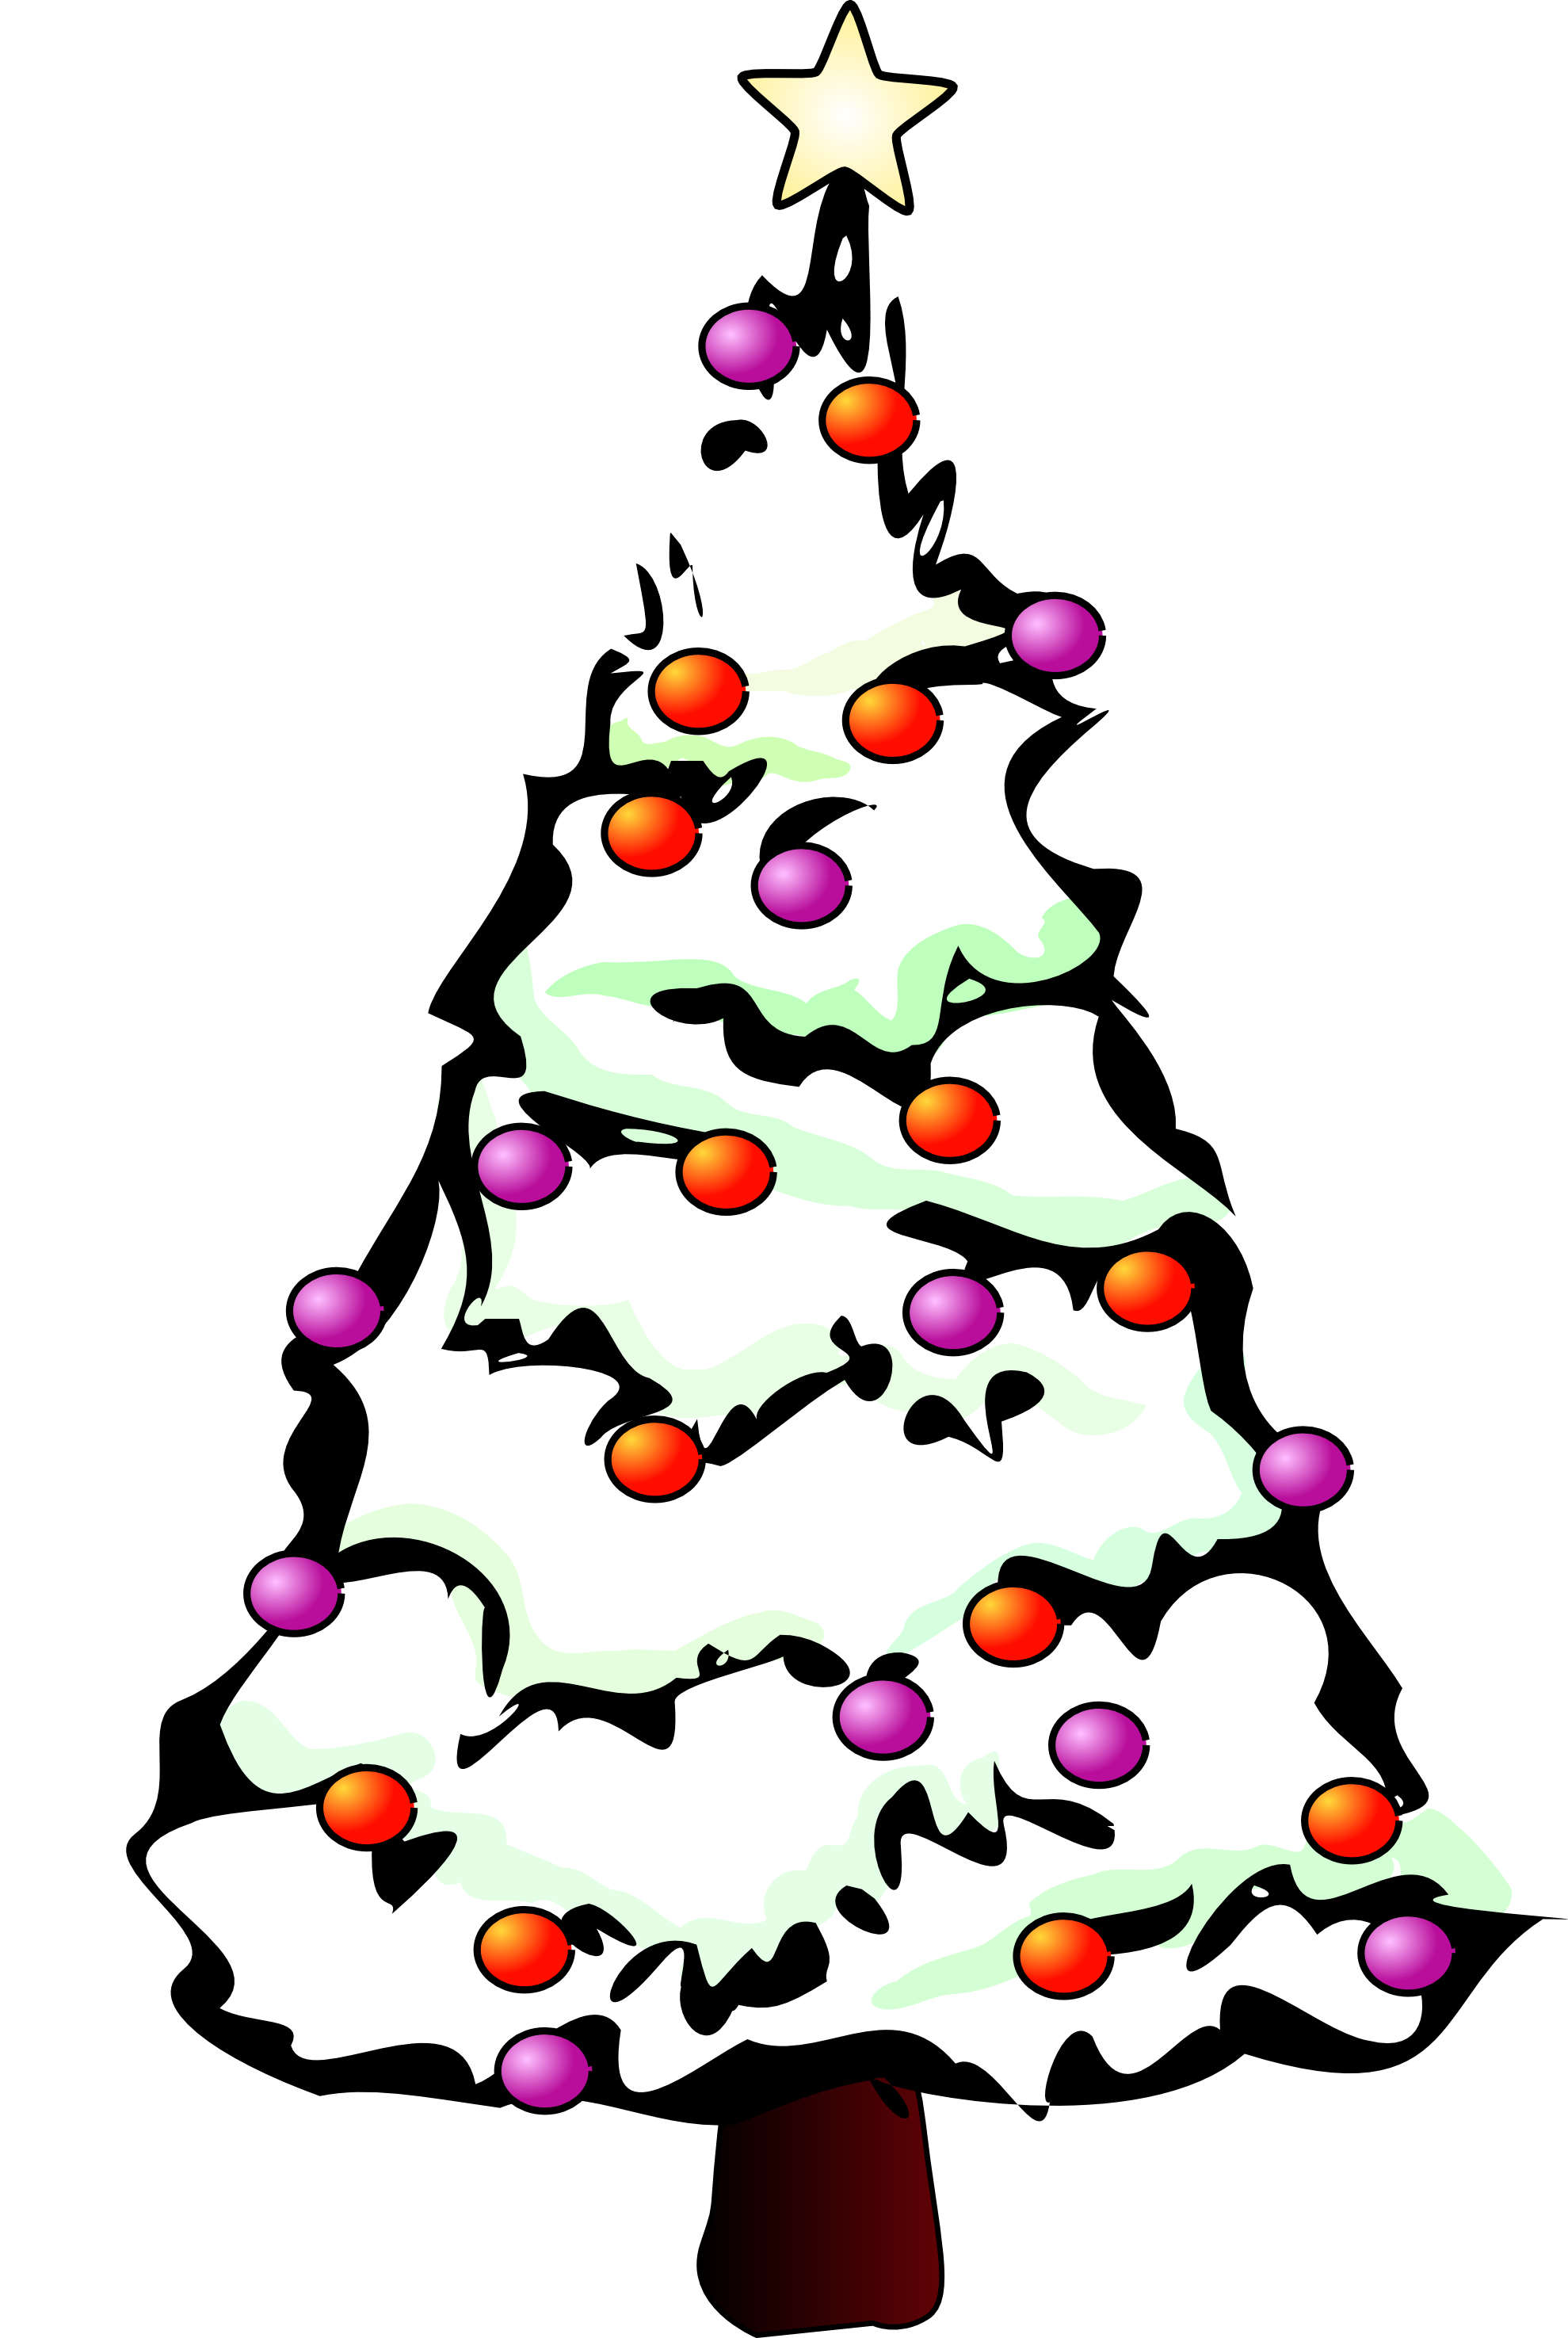 Christmas clipart religious picture library Trees Black And White Clipart | Free download best Trees Black And ... picture library